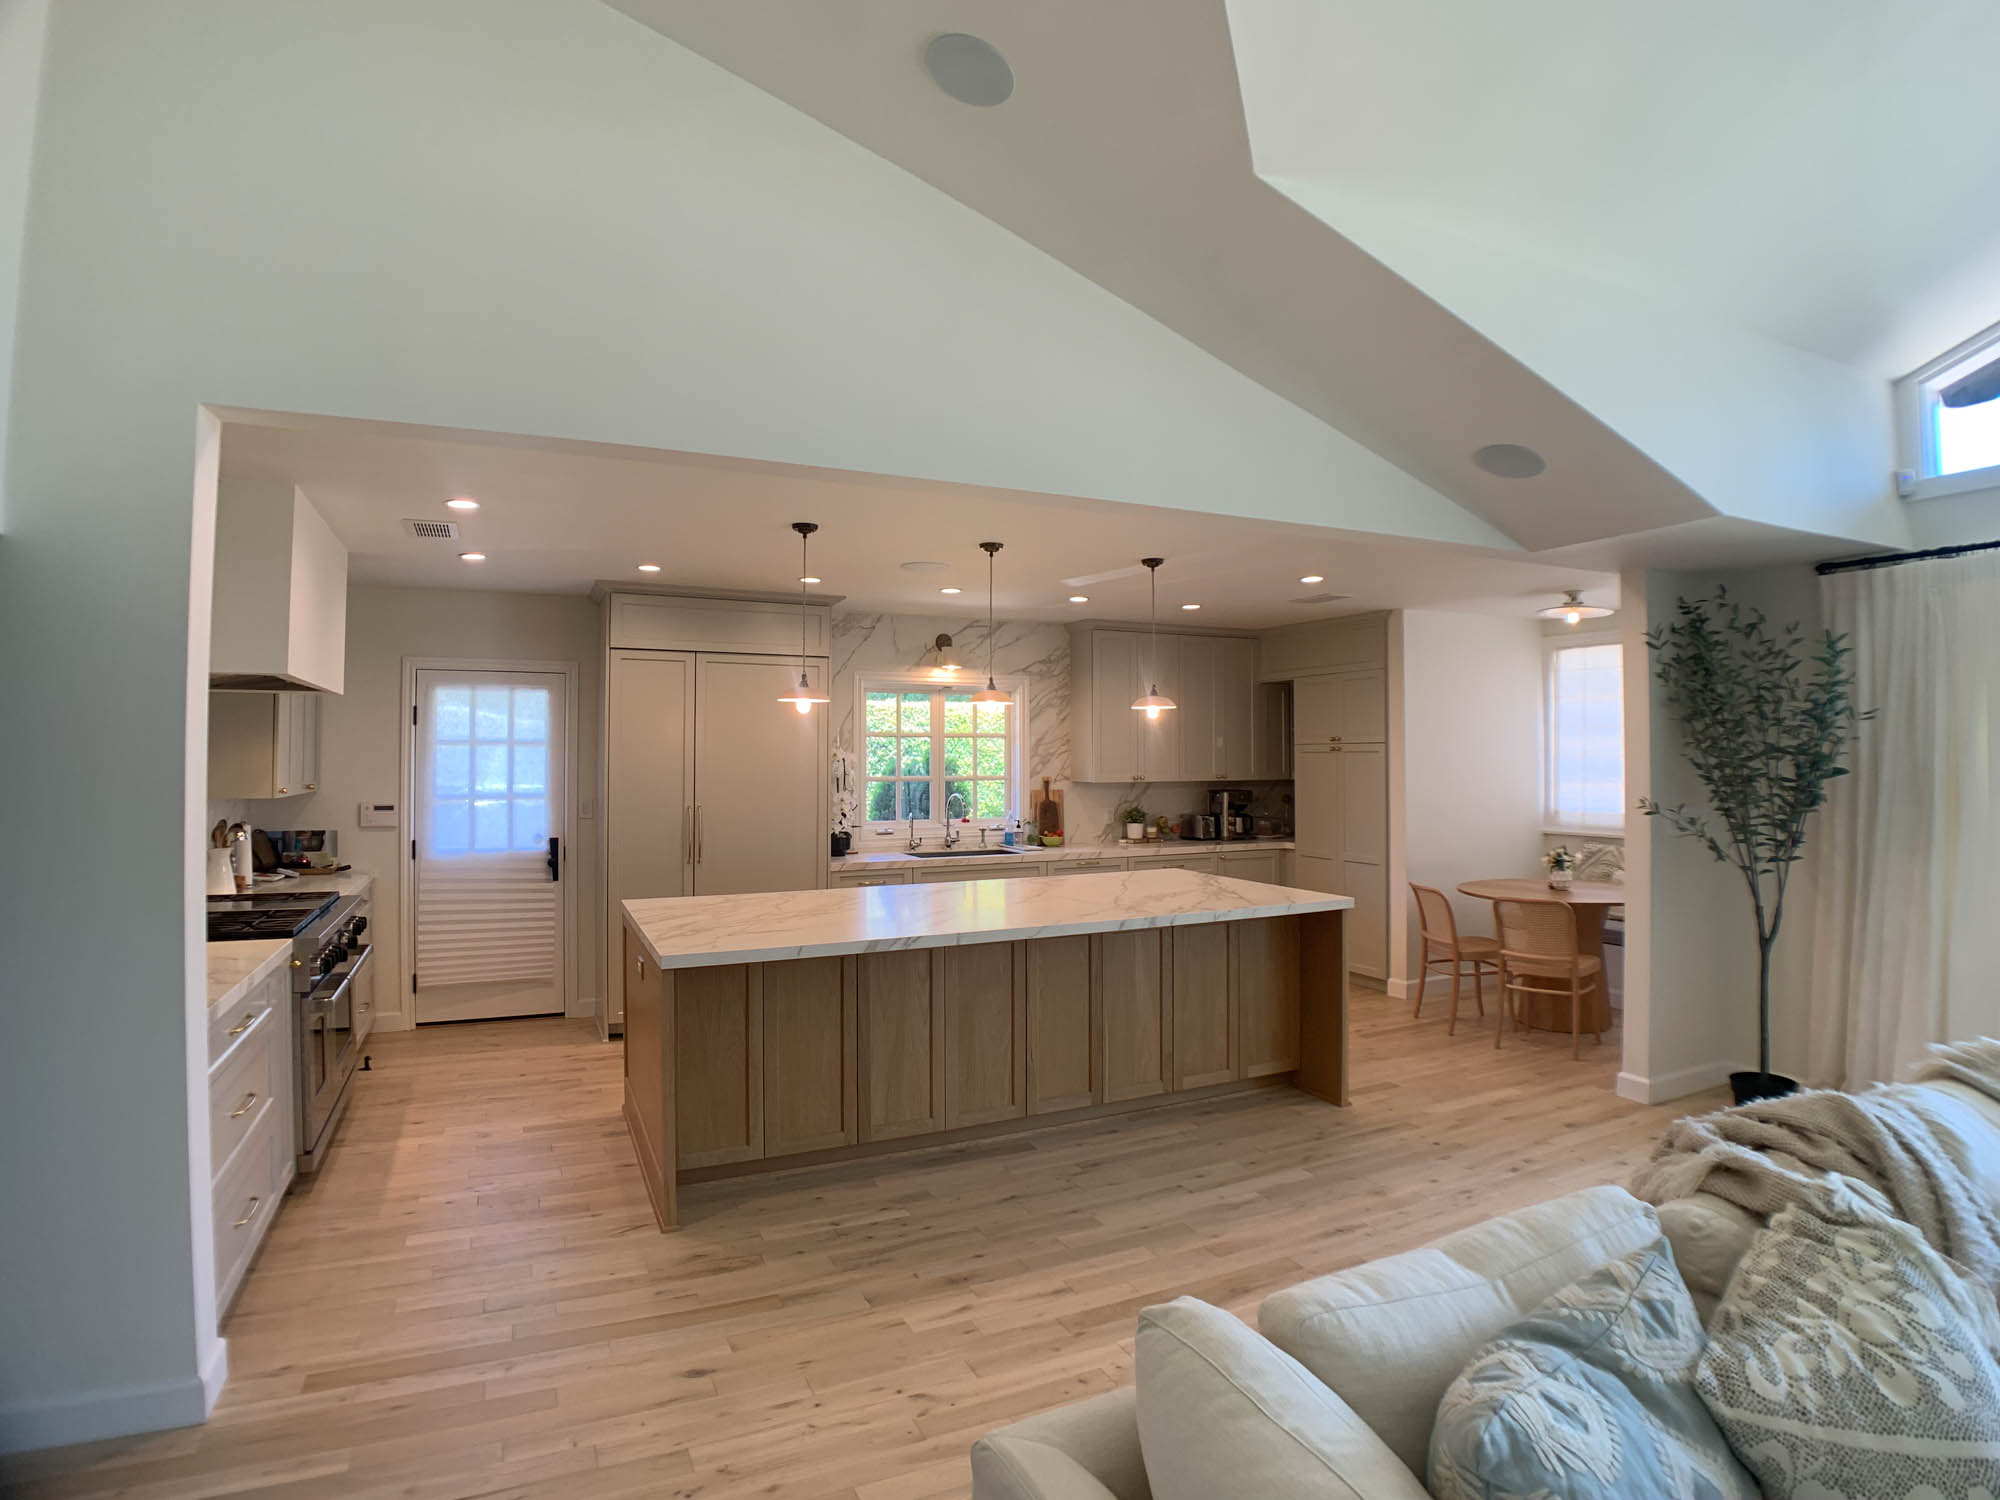 General Interior Remodel in Brentwood Heights CA